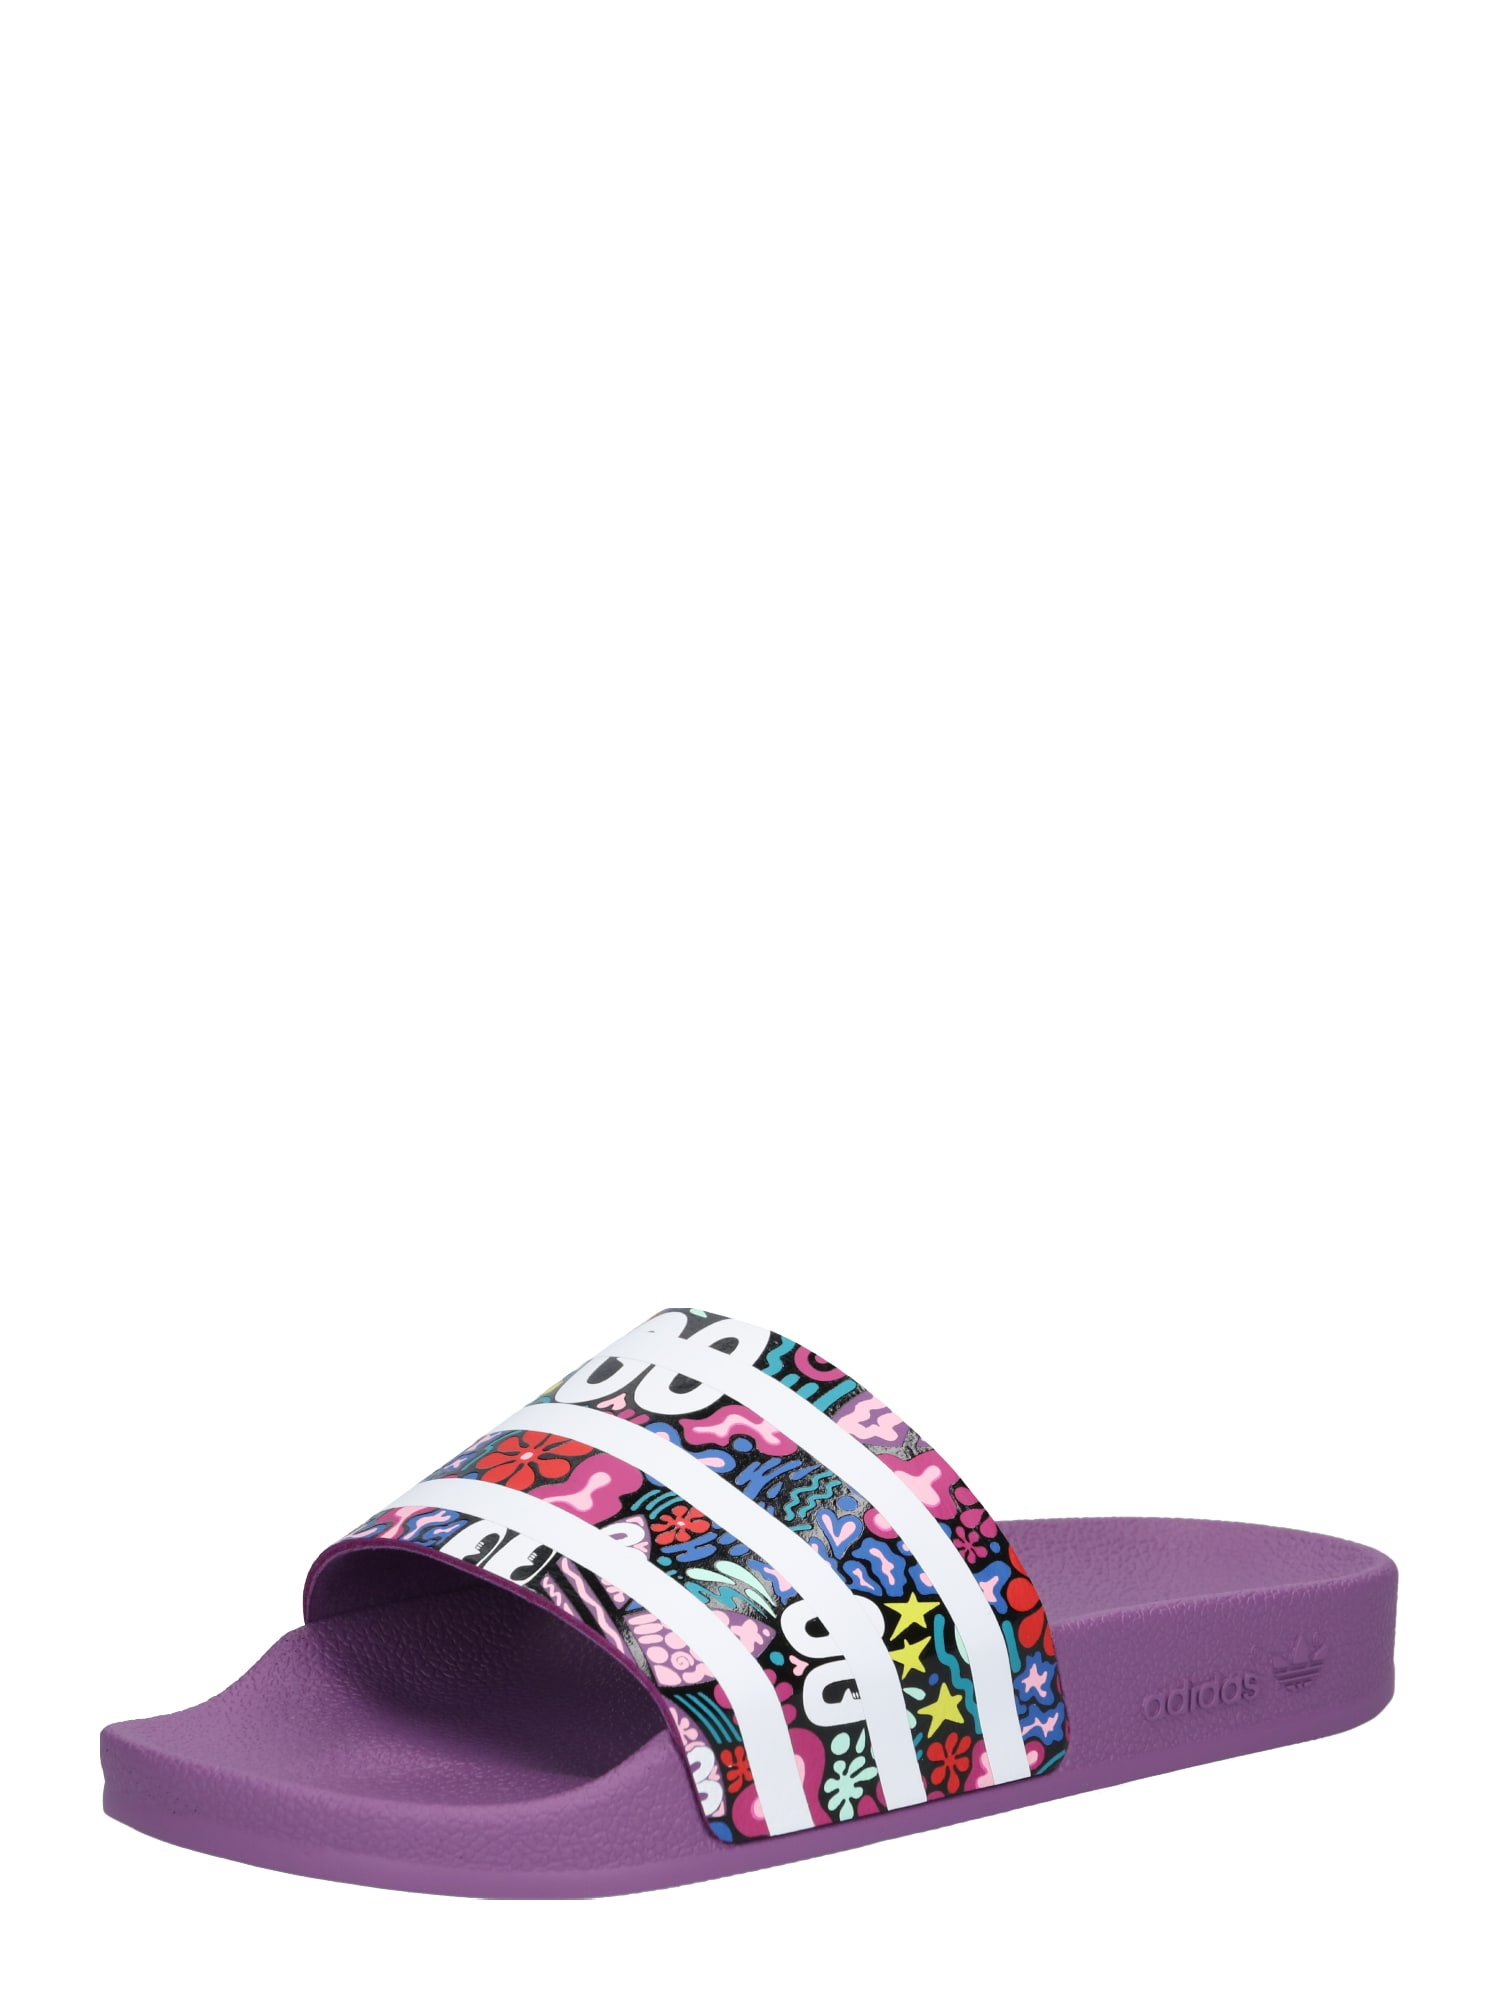 Pantofle Adilette lilek mix barev ADIDAS ORIGINALS